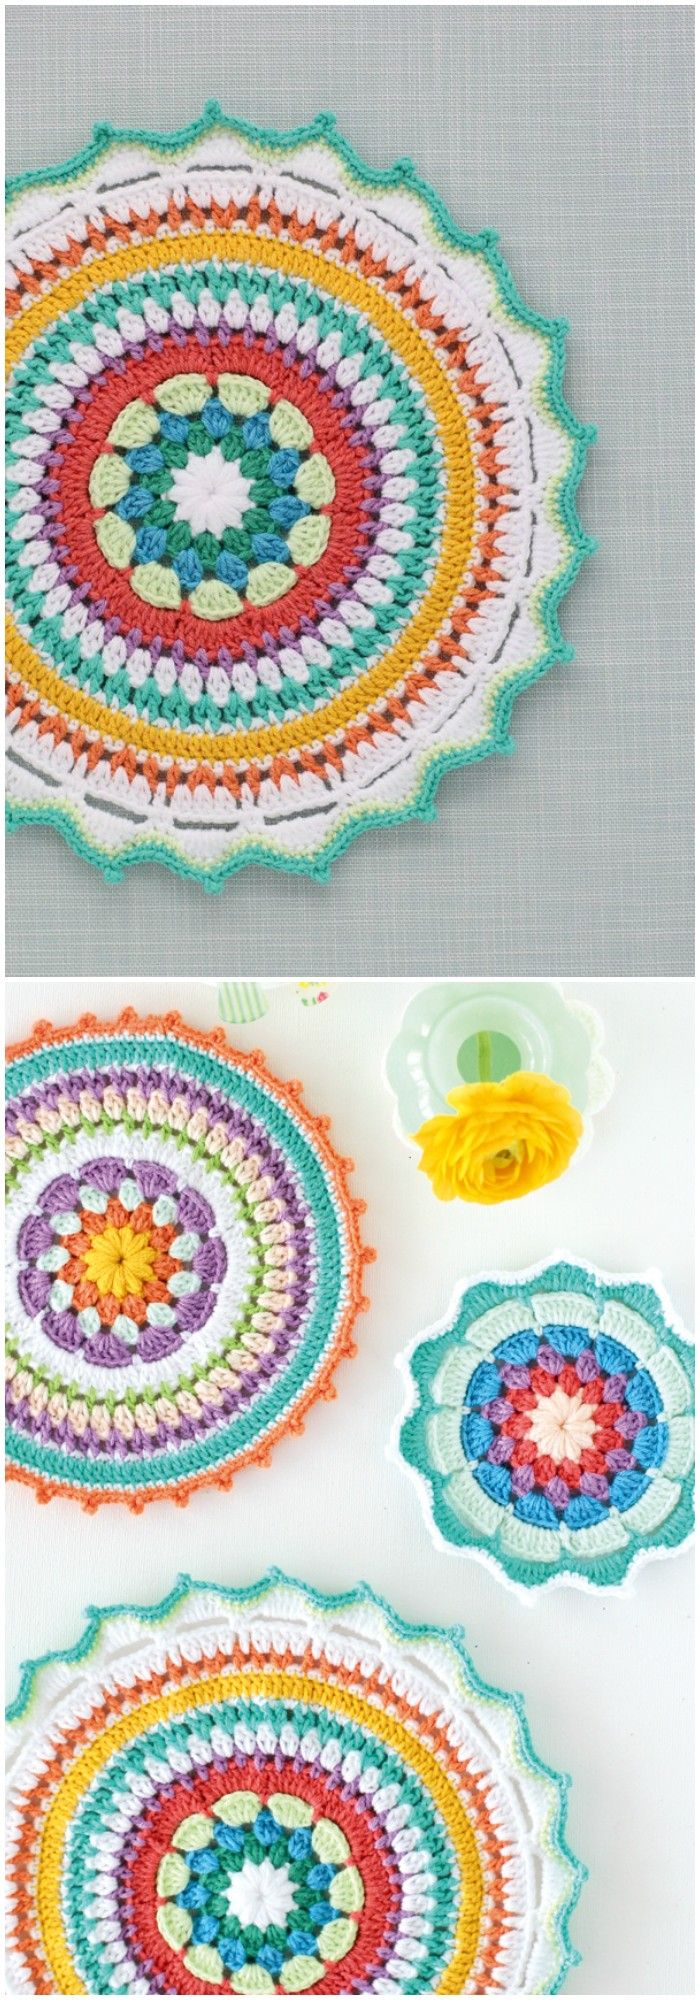 1580 best crochet potholders images on Pinterest | Topflappen ...